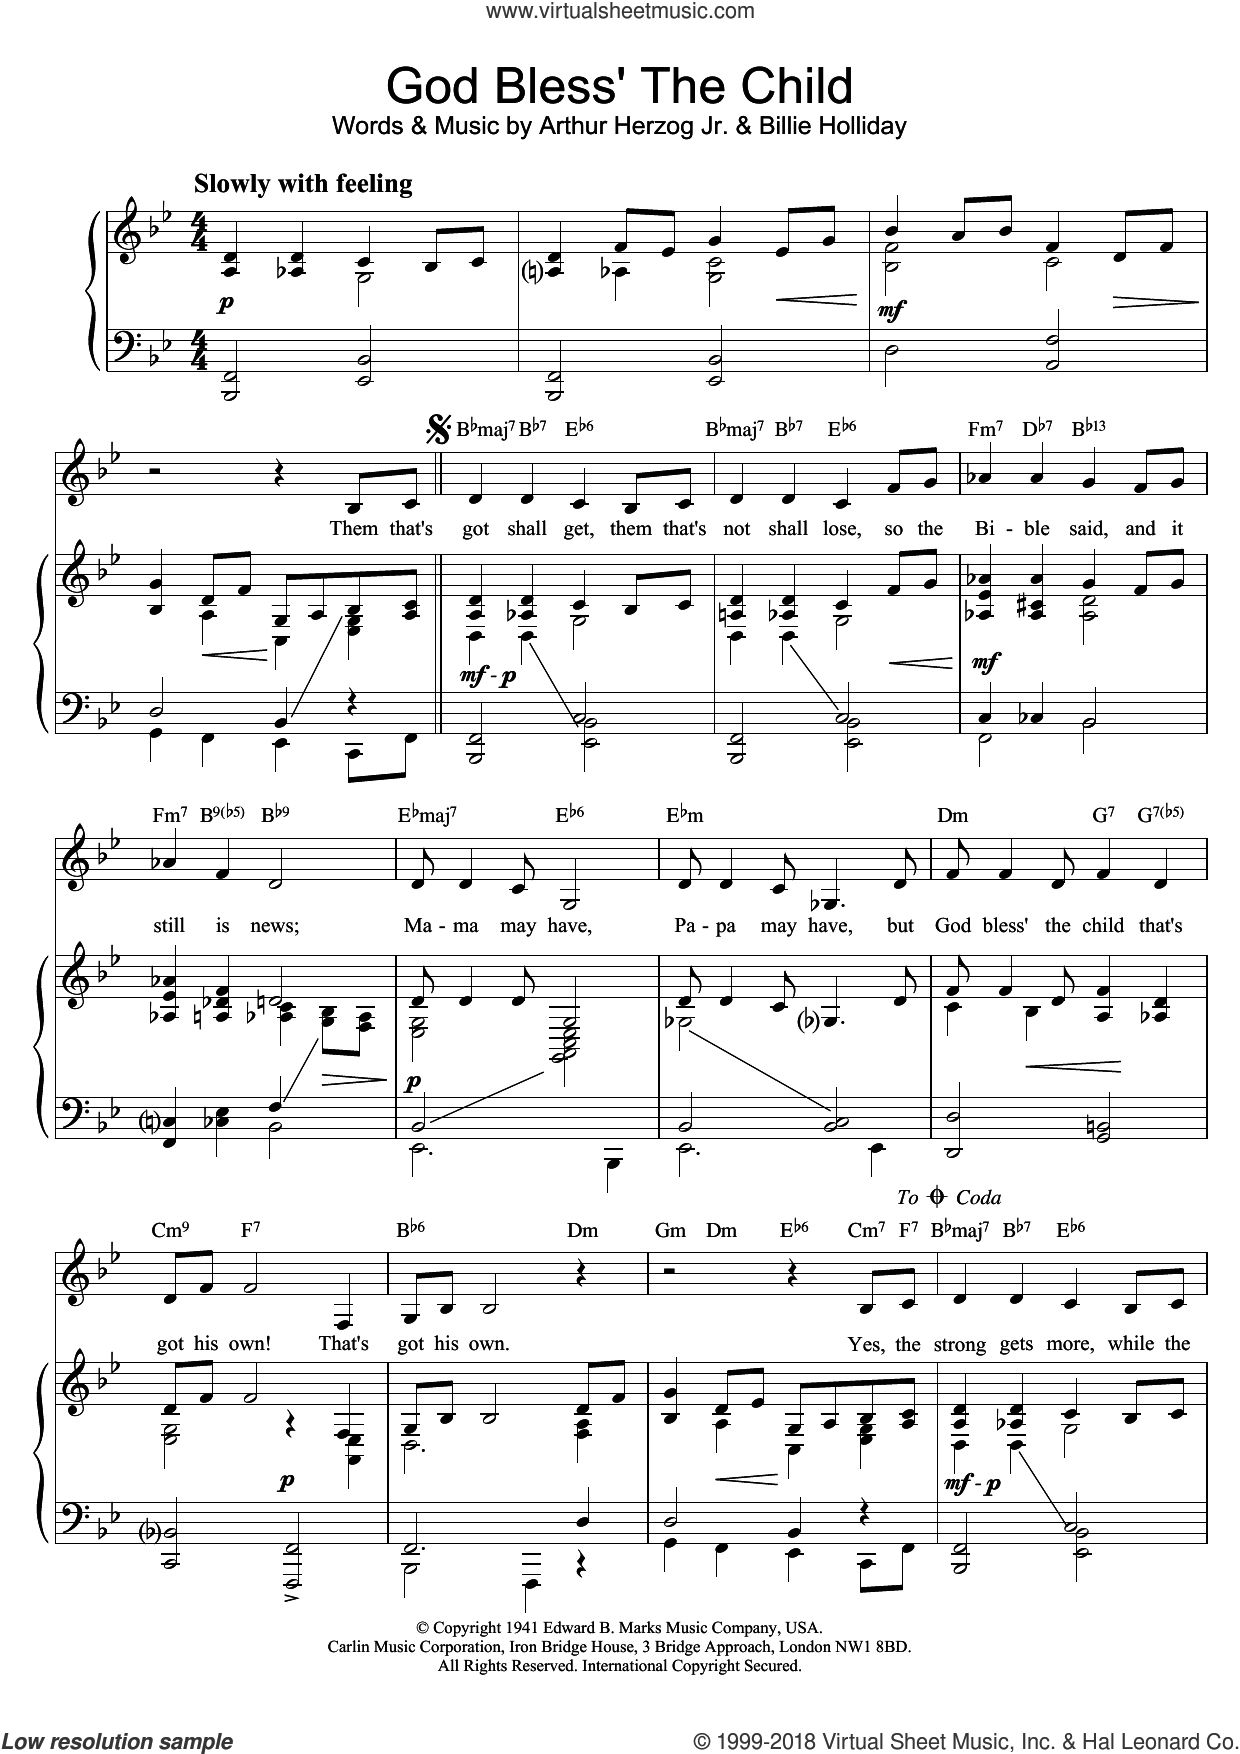 God Bless' The Child sheet music for voice, piano or guitar by Arthur Herzog Jr.